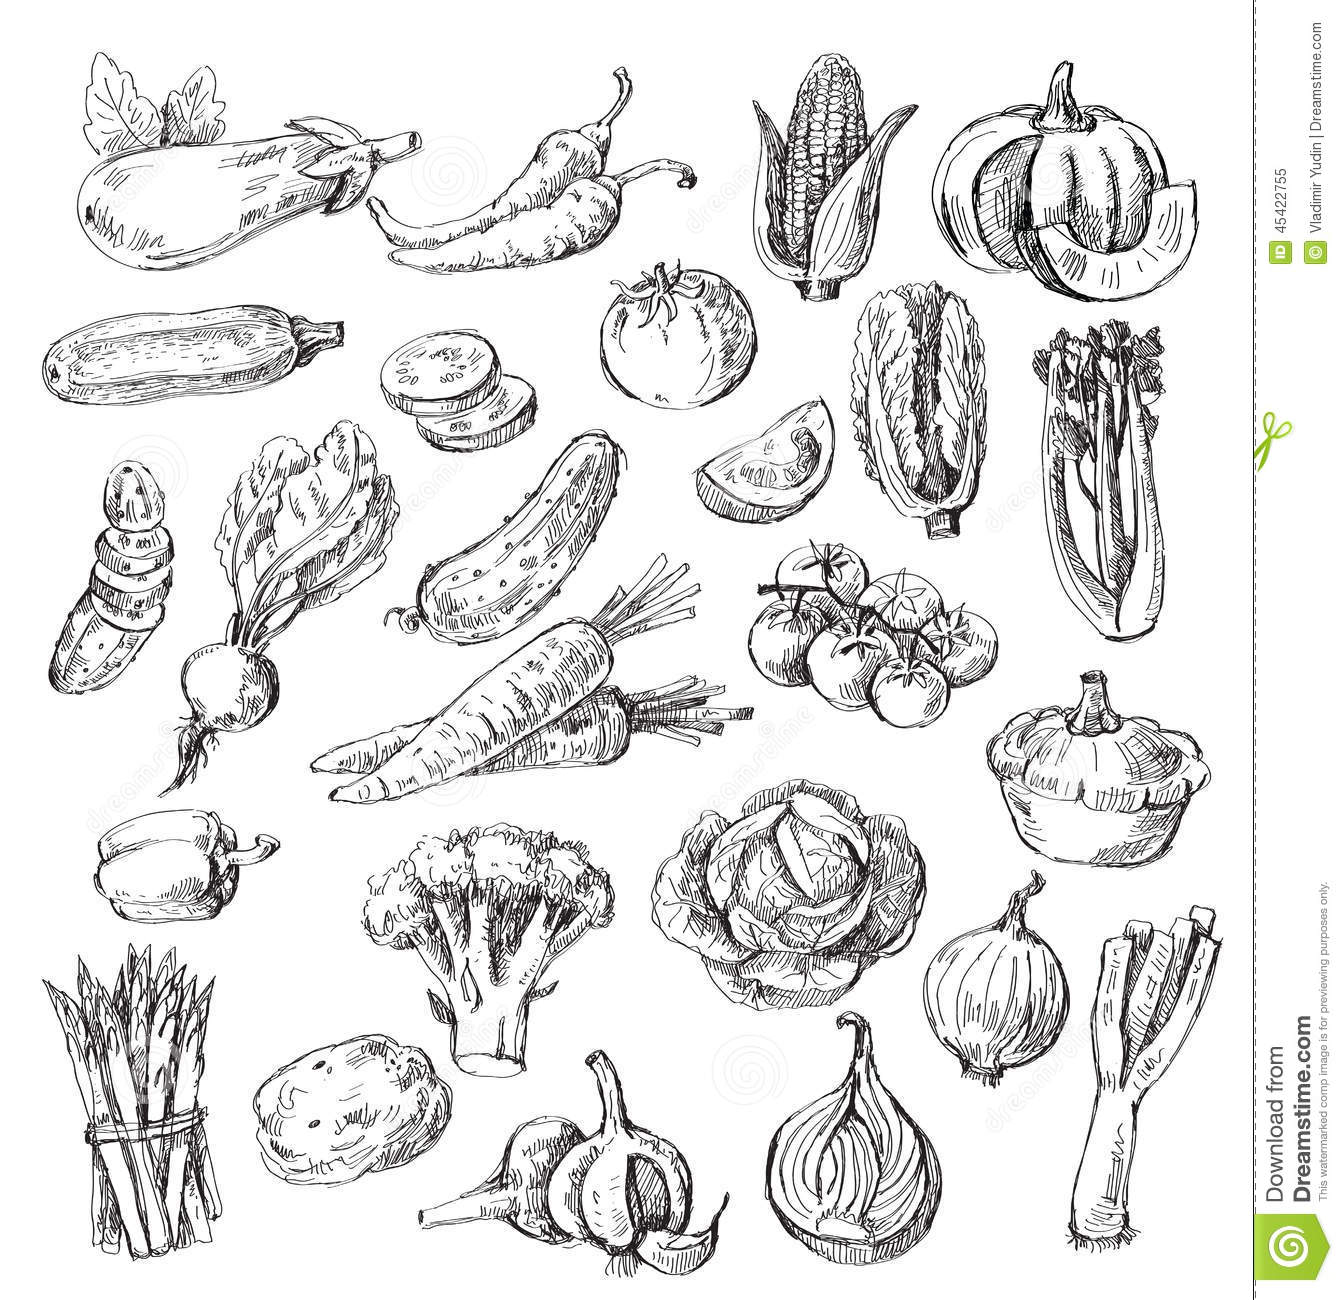 Hand Drawn Vegetable Stock Vector - Image: 45422755